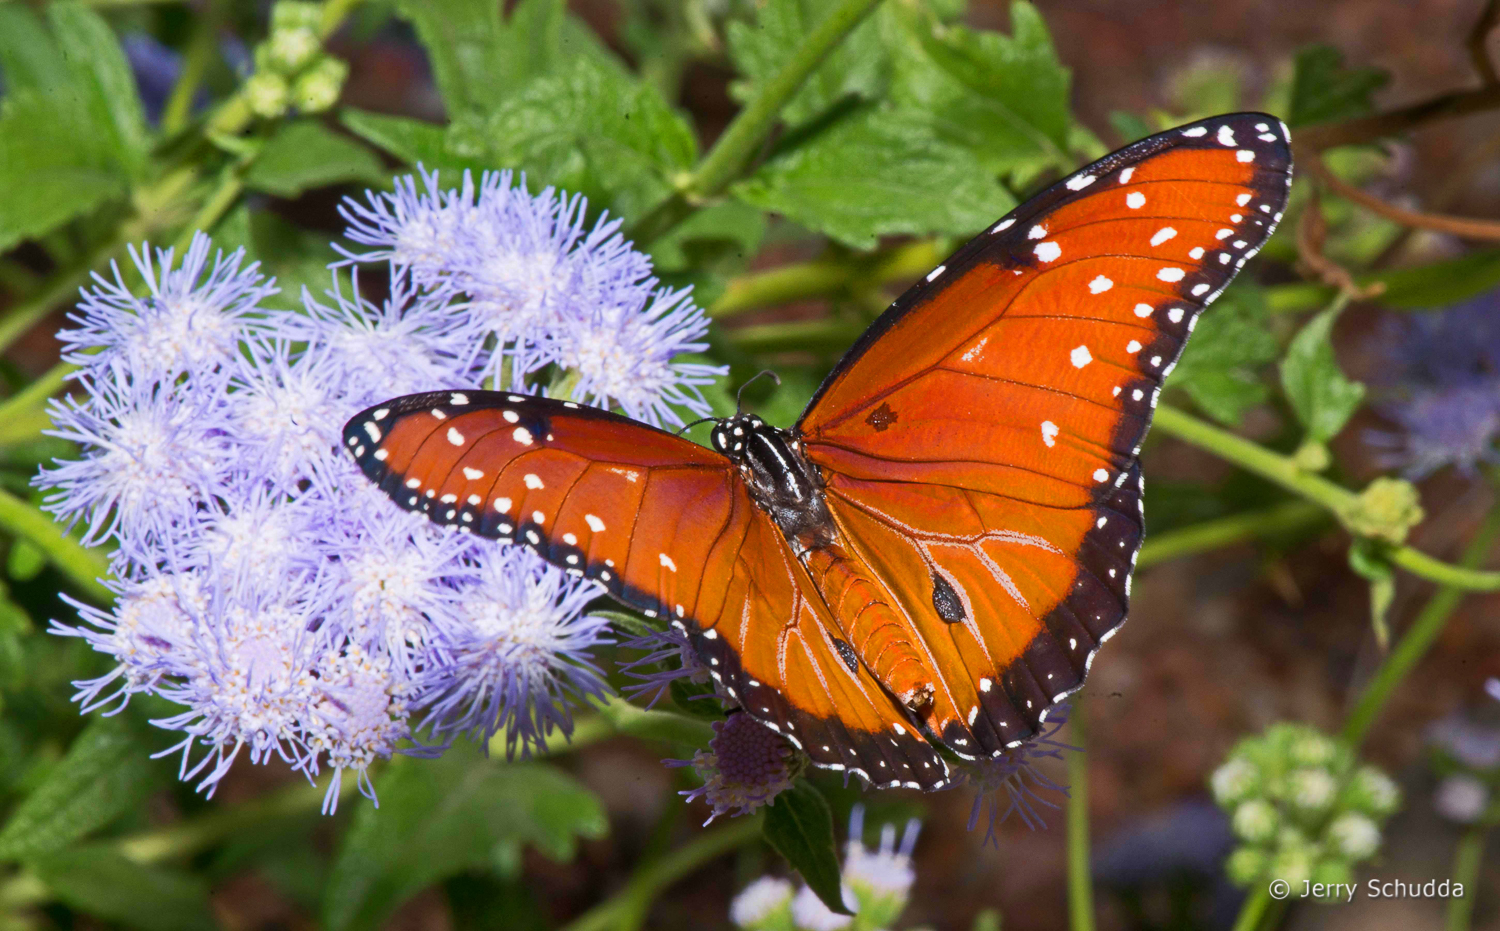 Queen Butterfly on host plant Blue Mist